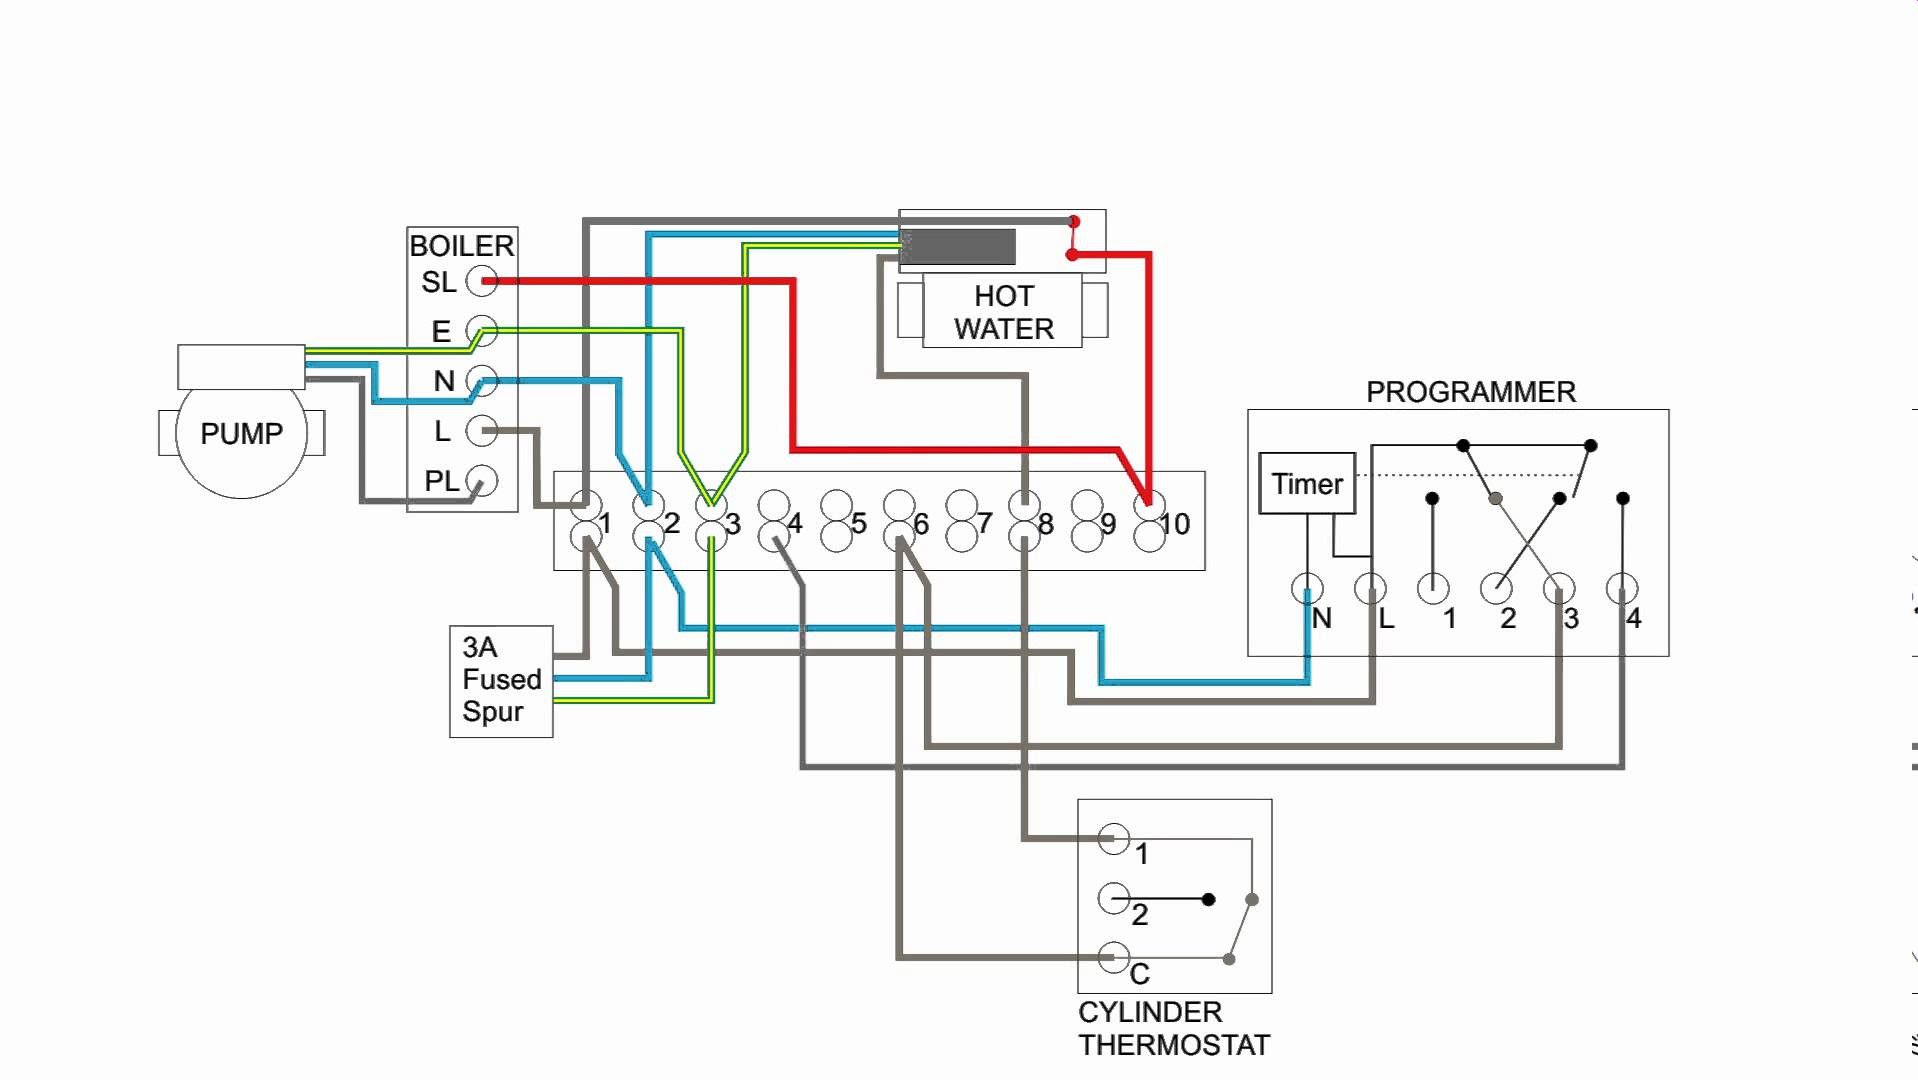 central boiler thermostat wiring diagram Download-central boiler thermostat wiring diagram Collection Hive Thermostat Wiring Diagram Best Central Heating Electrical Wiring 5-m